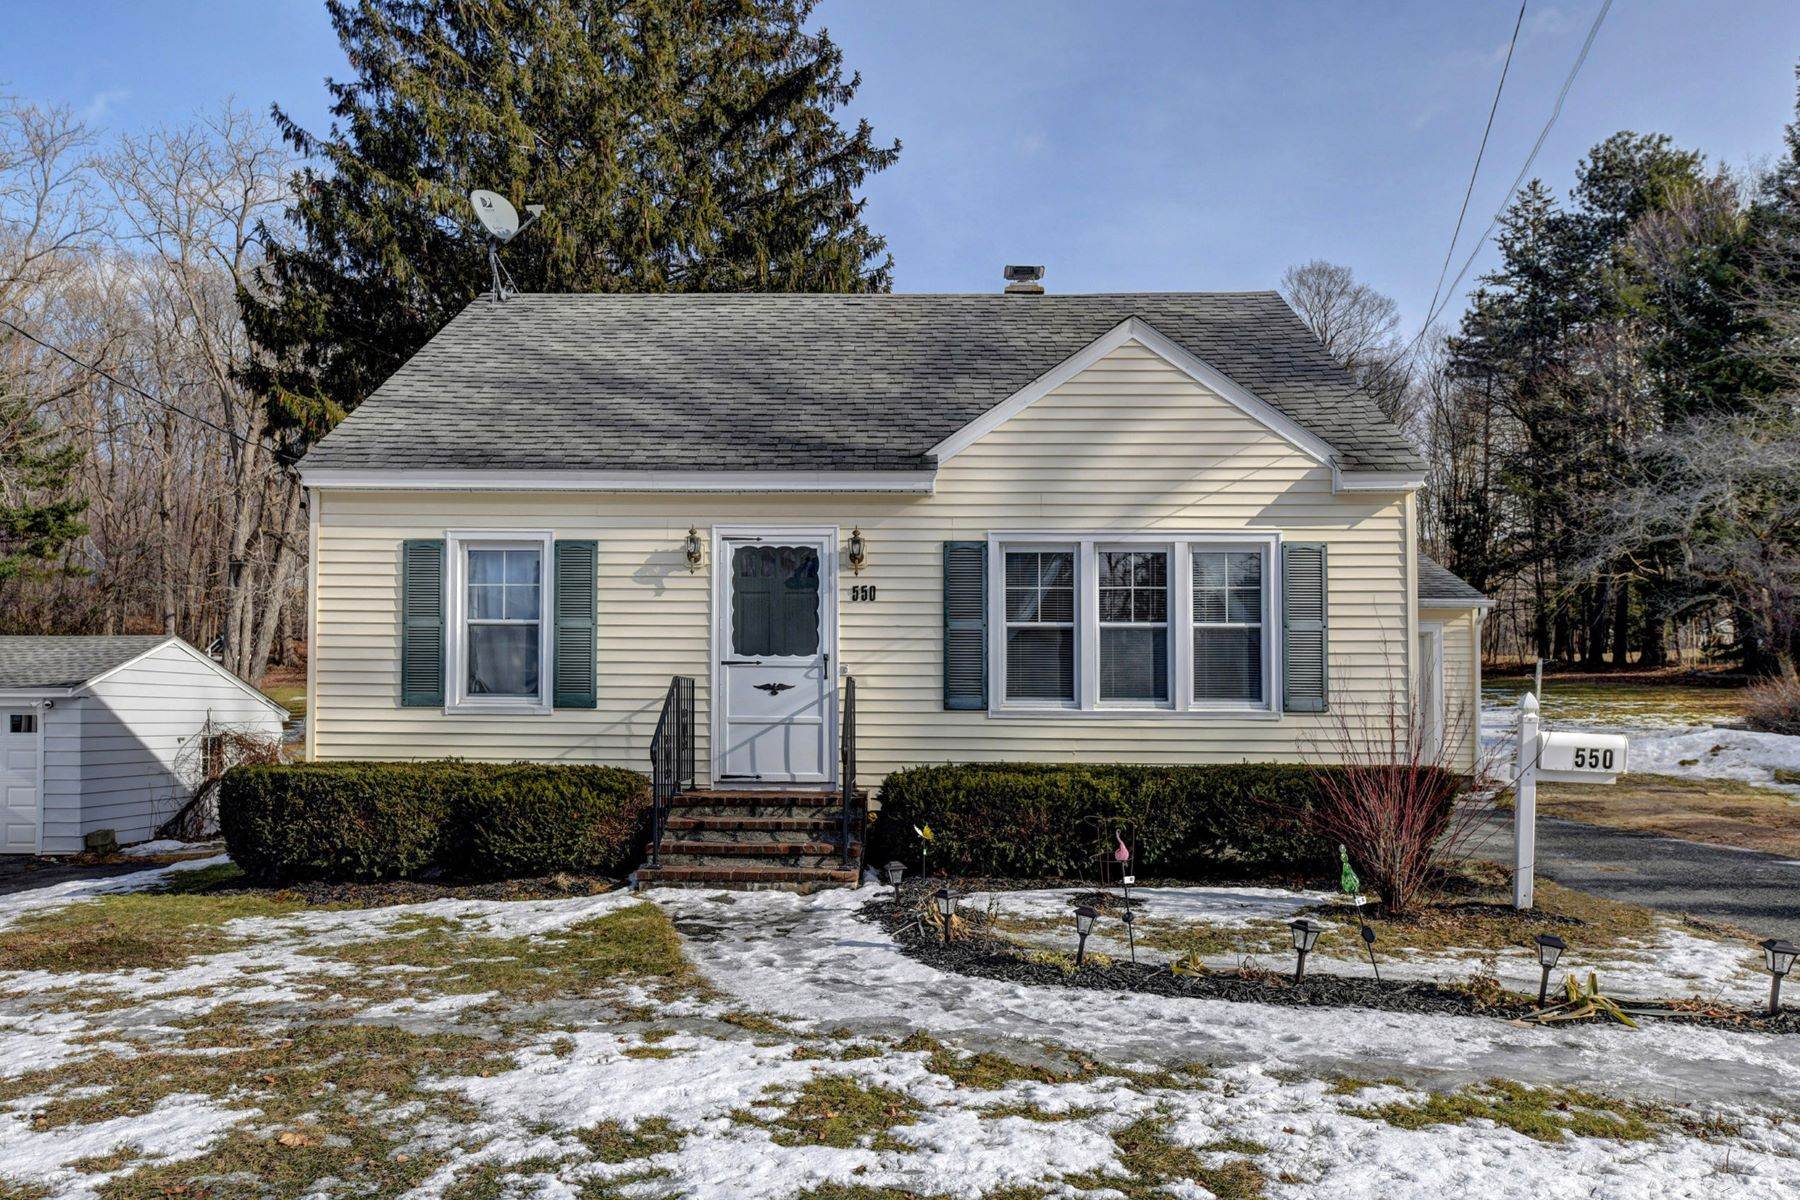 Single Family Home for Active at Roomy Dalton Cape on a Very Large Sunny Lot with Many Recent Big Ticket Updates! 550 South St Dalton, Massachusetts 01226 United States